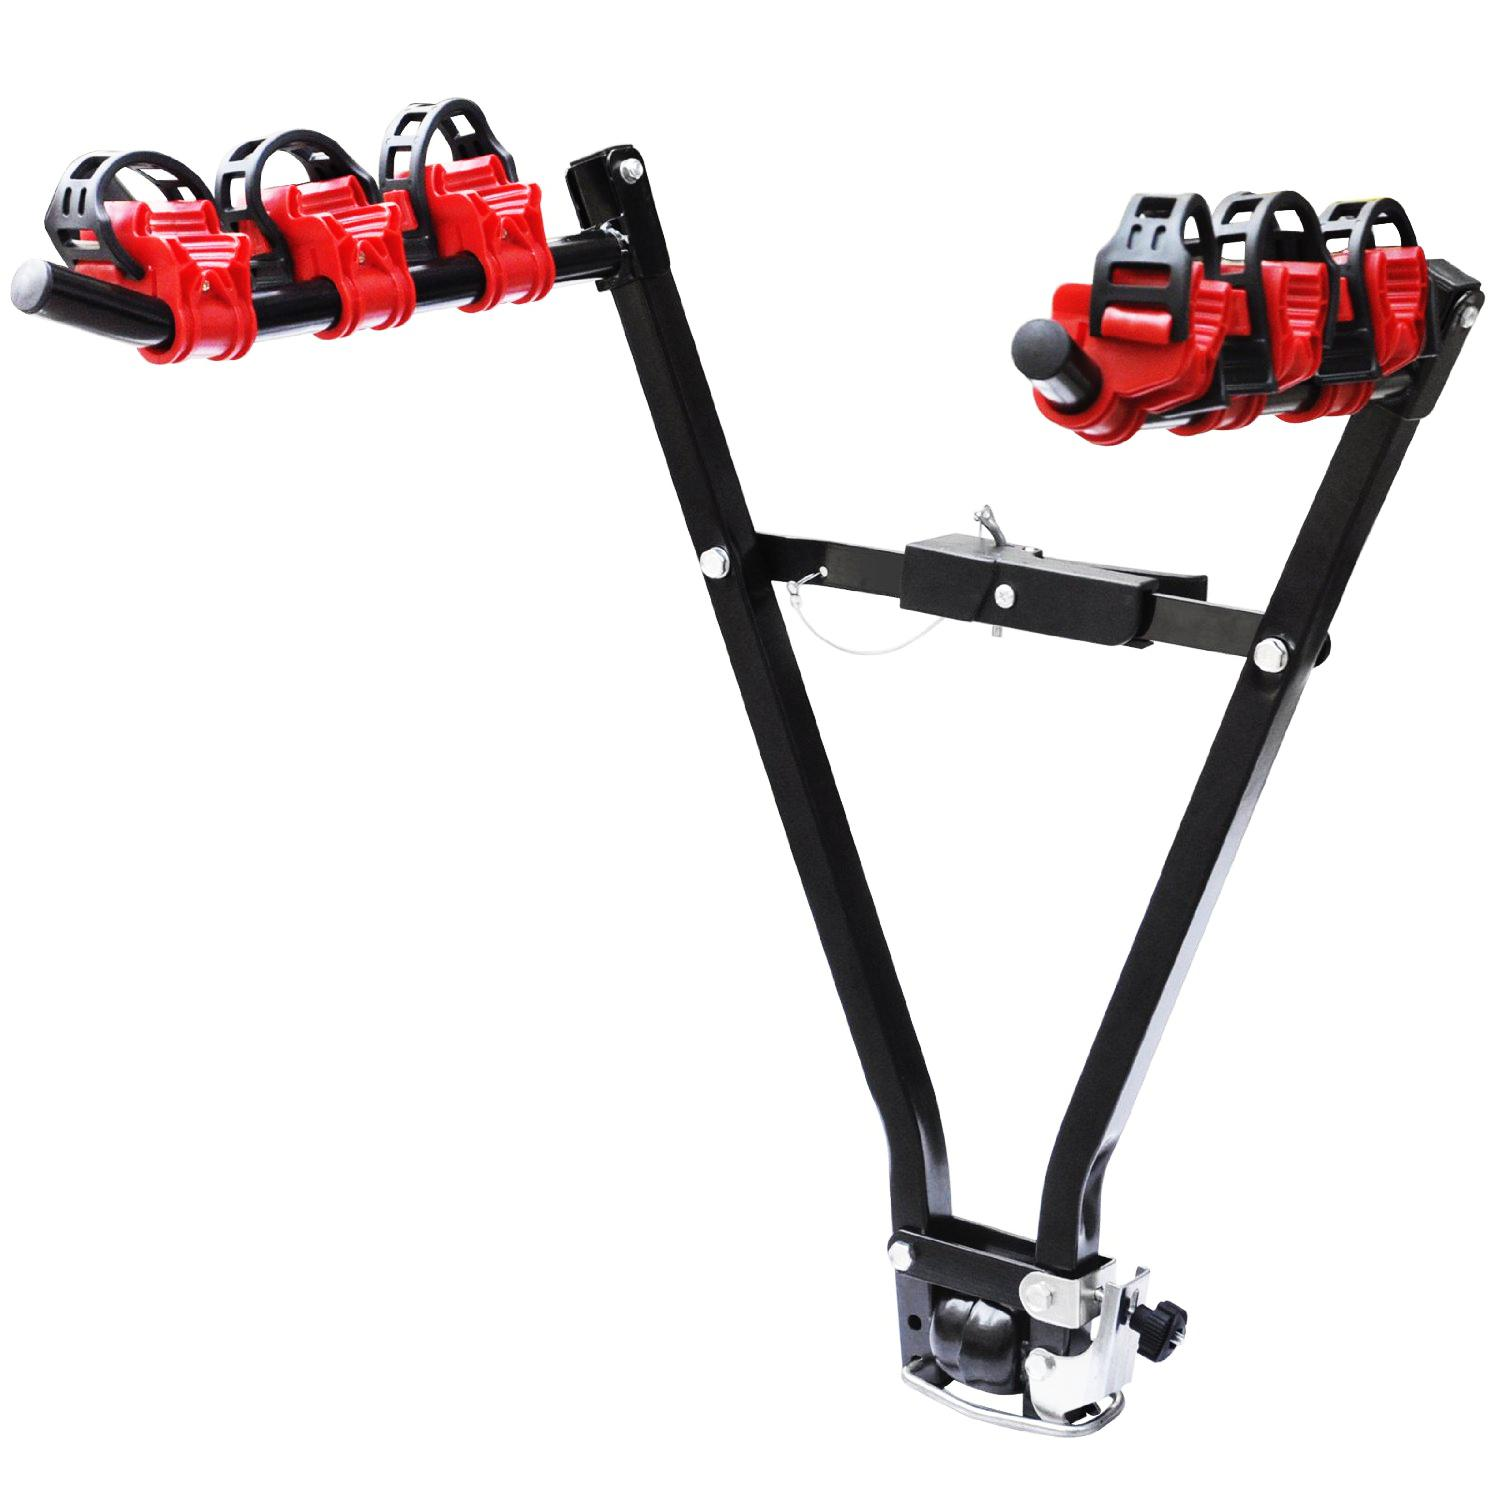 Universal 3 Bike Bicycle Tow Bar Car Mount Rack Stand Carrier